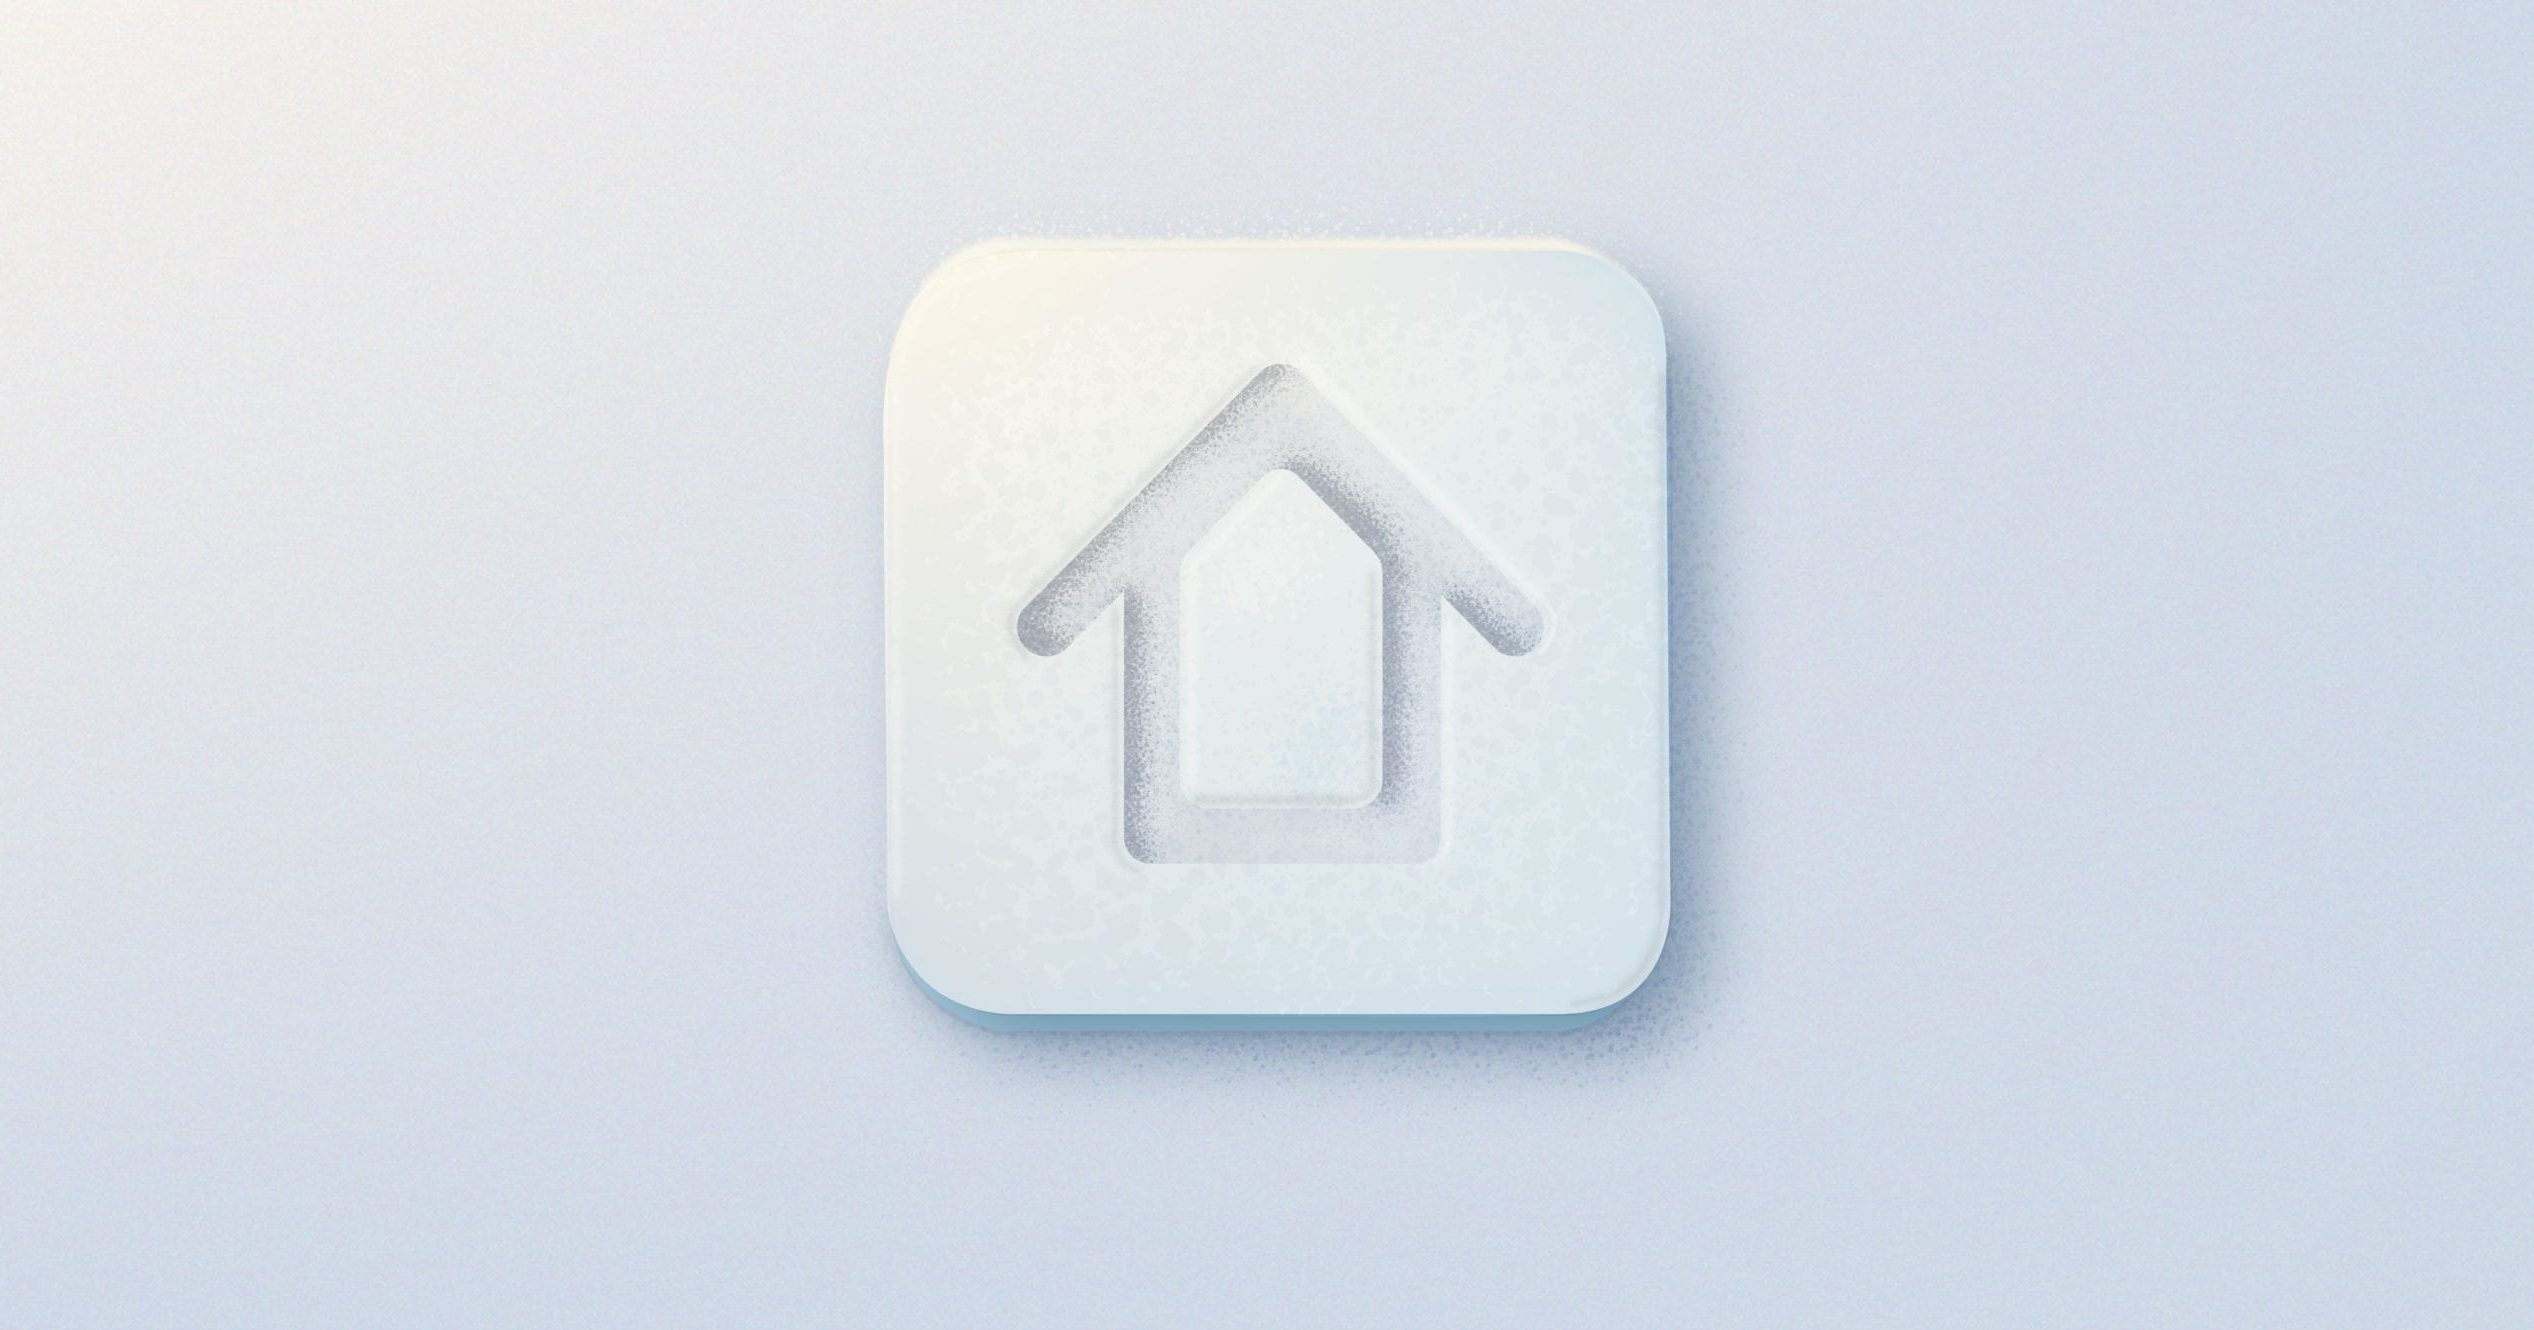 Home_Icon_Illustration_Dark